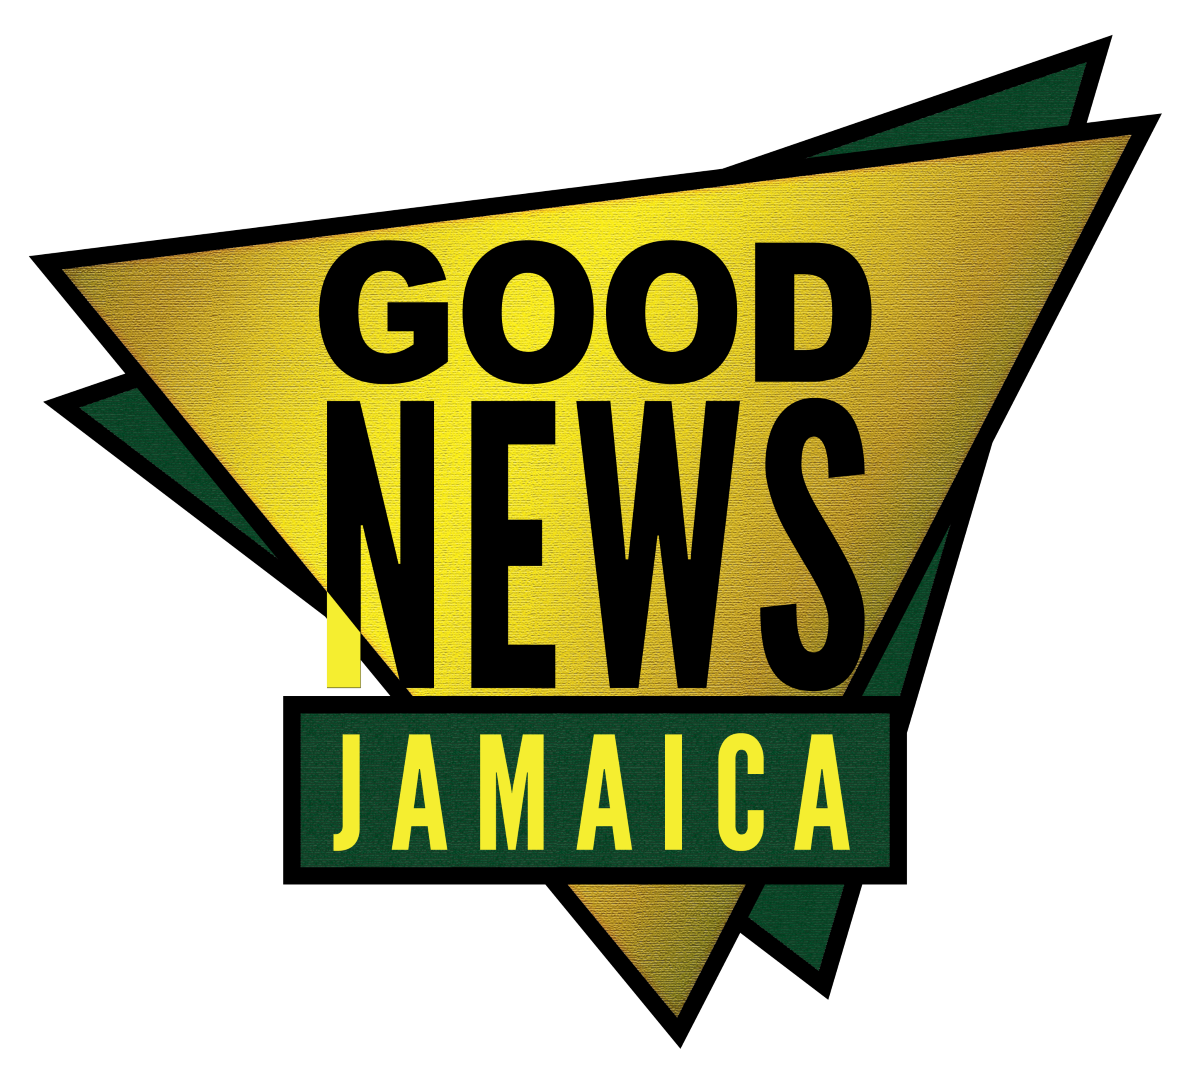 Good News Jamaica